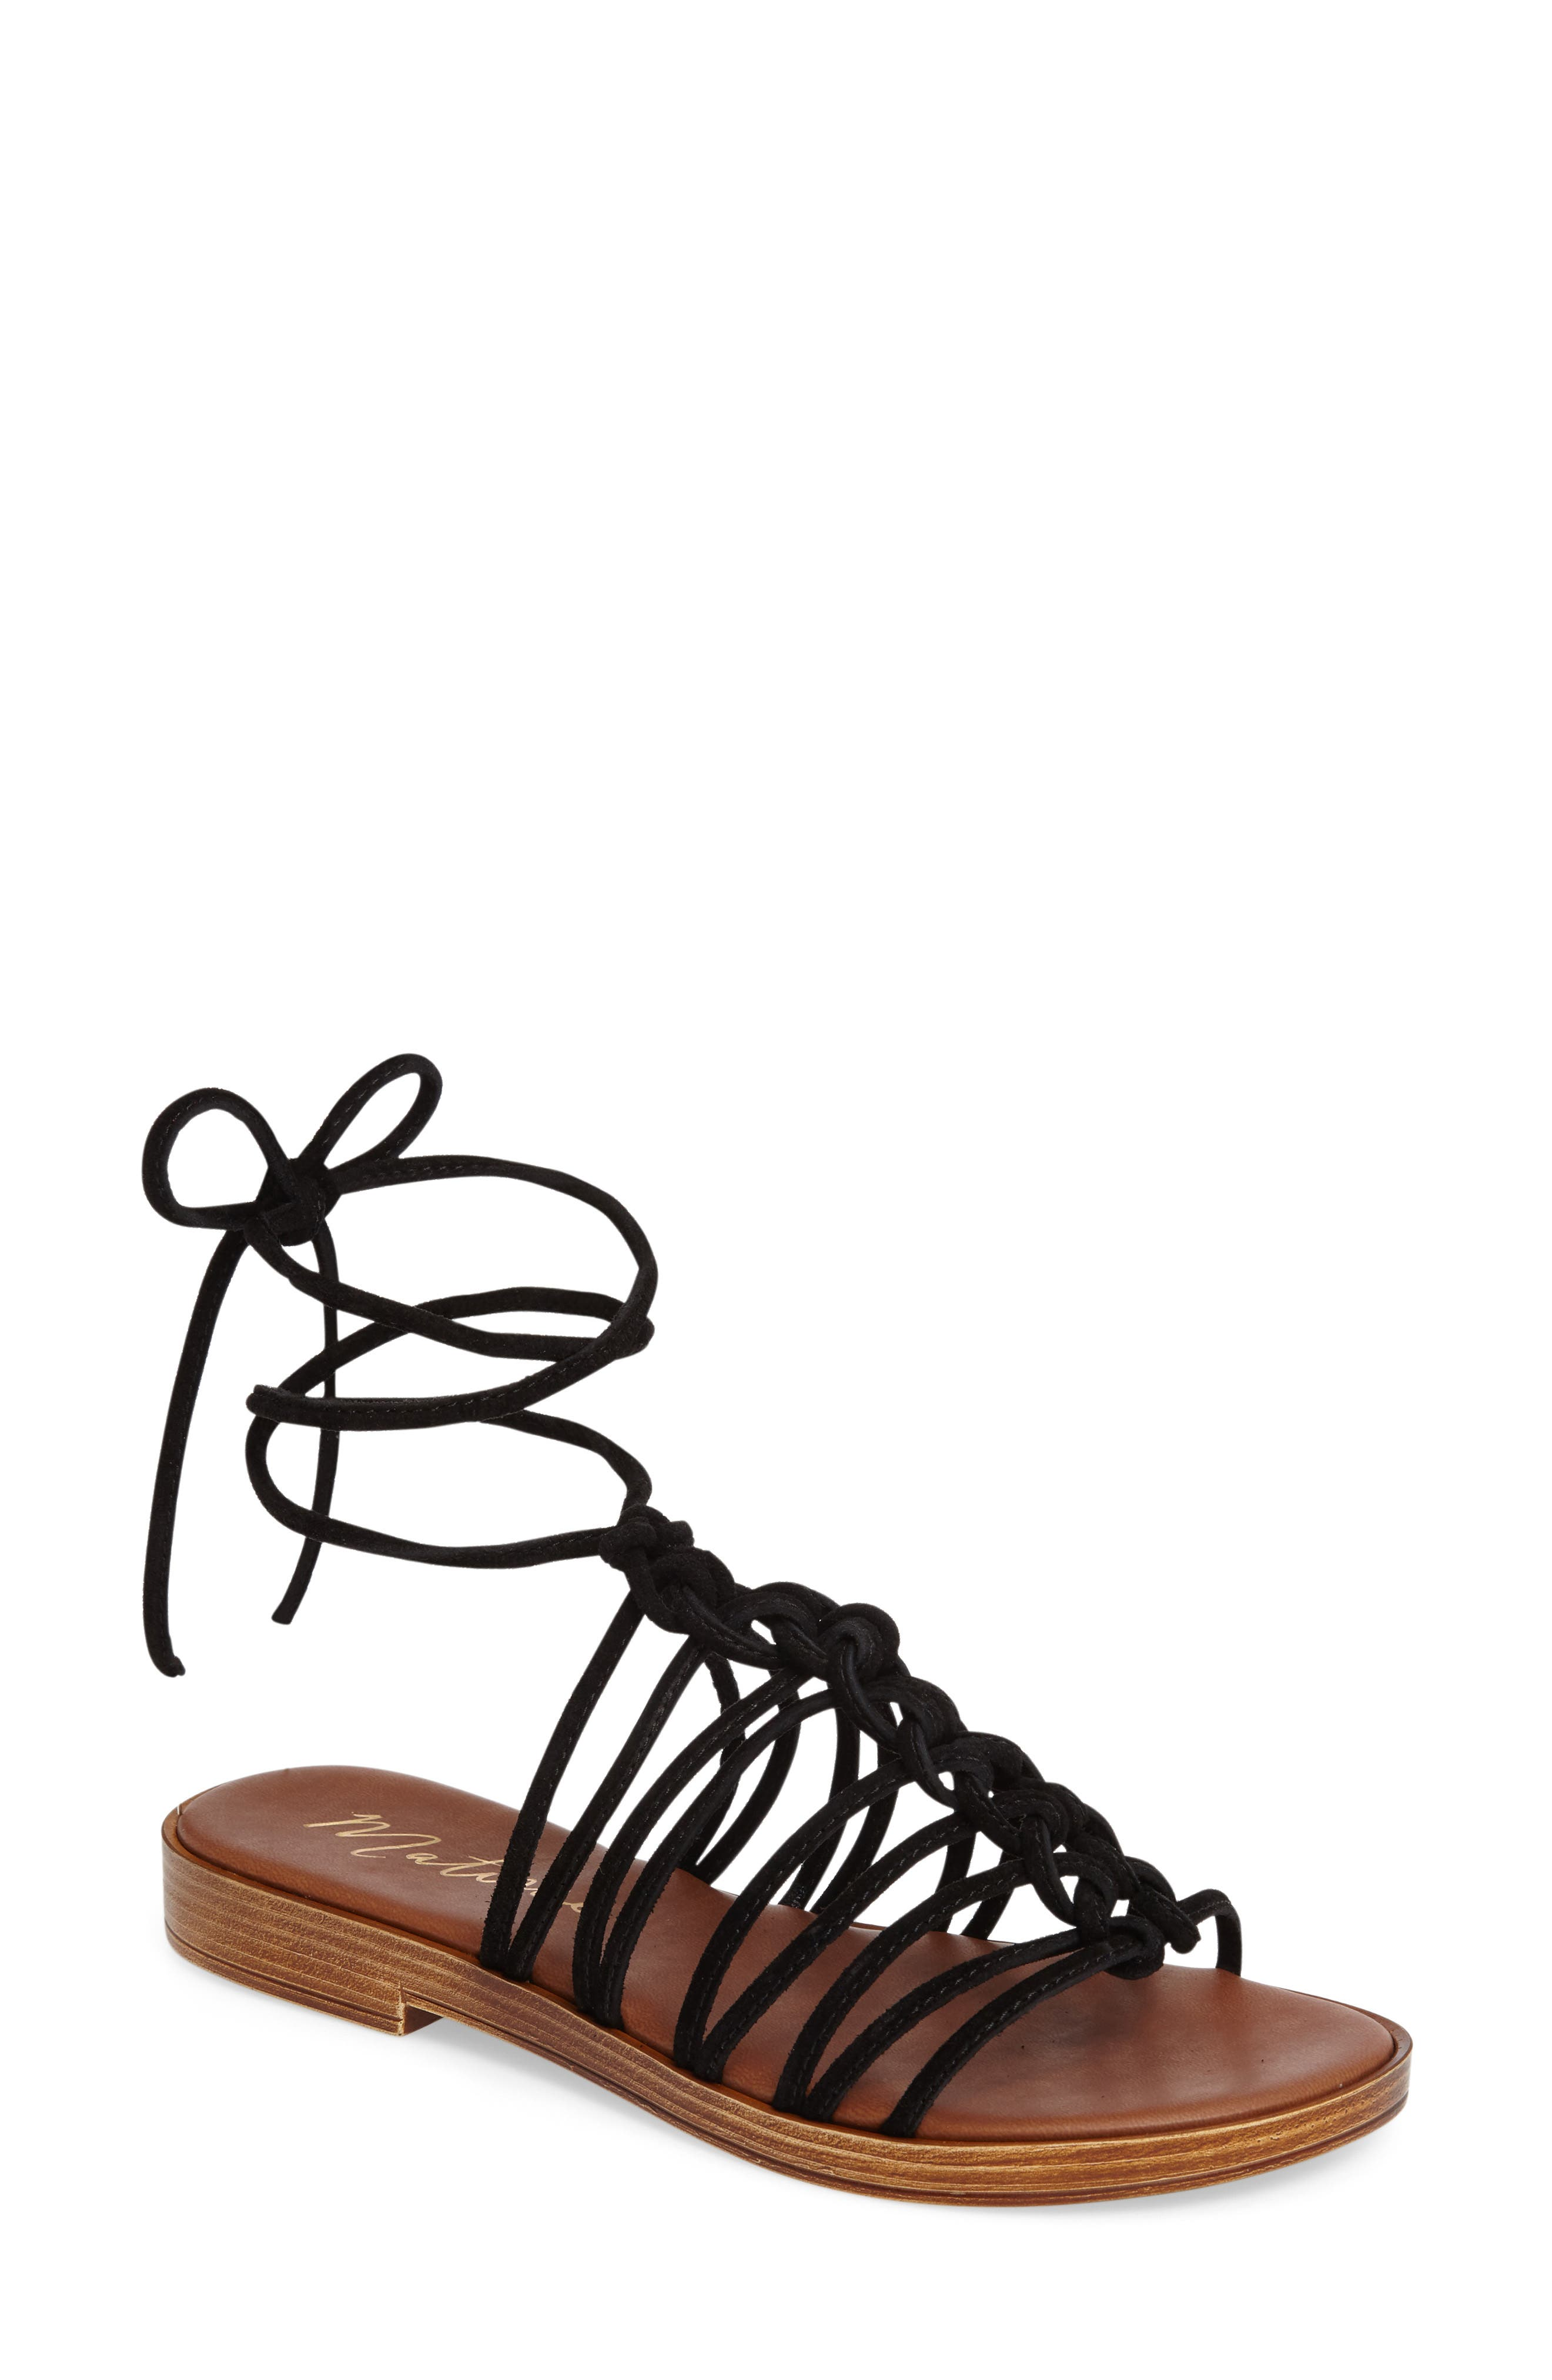 Alternate Image 1 Selected - Matisse Origin Lace-Up Sandal (Women)